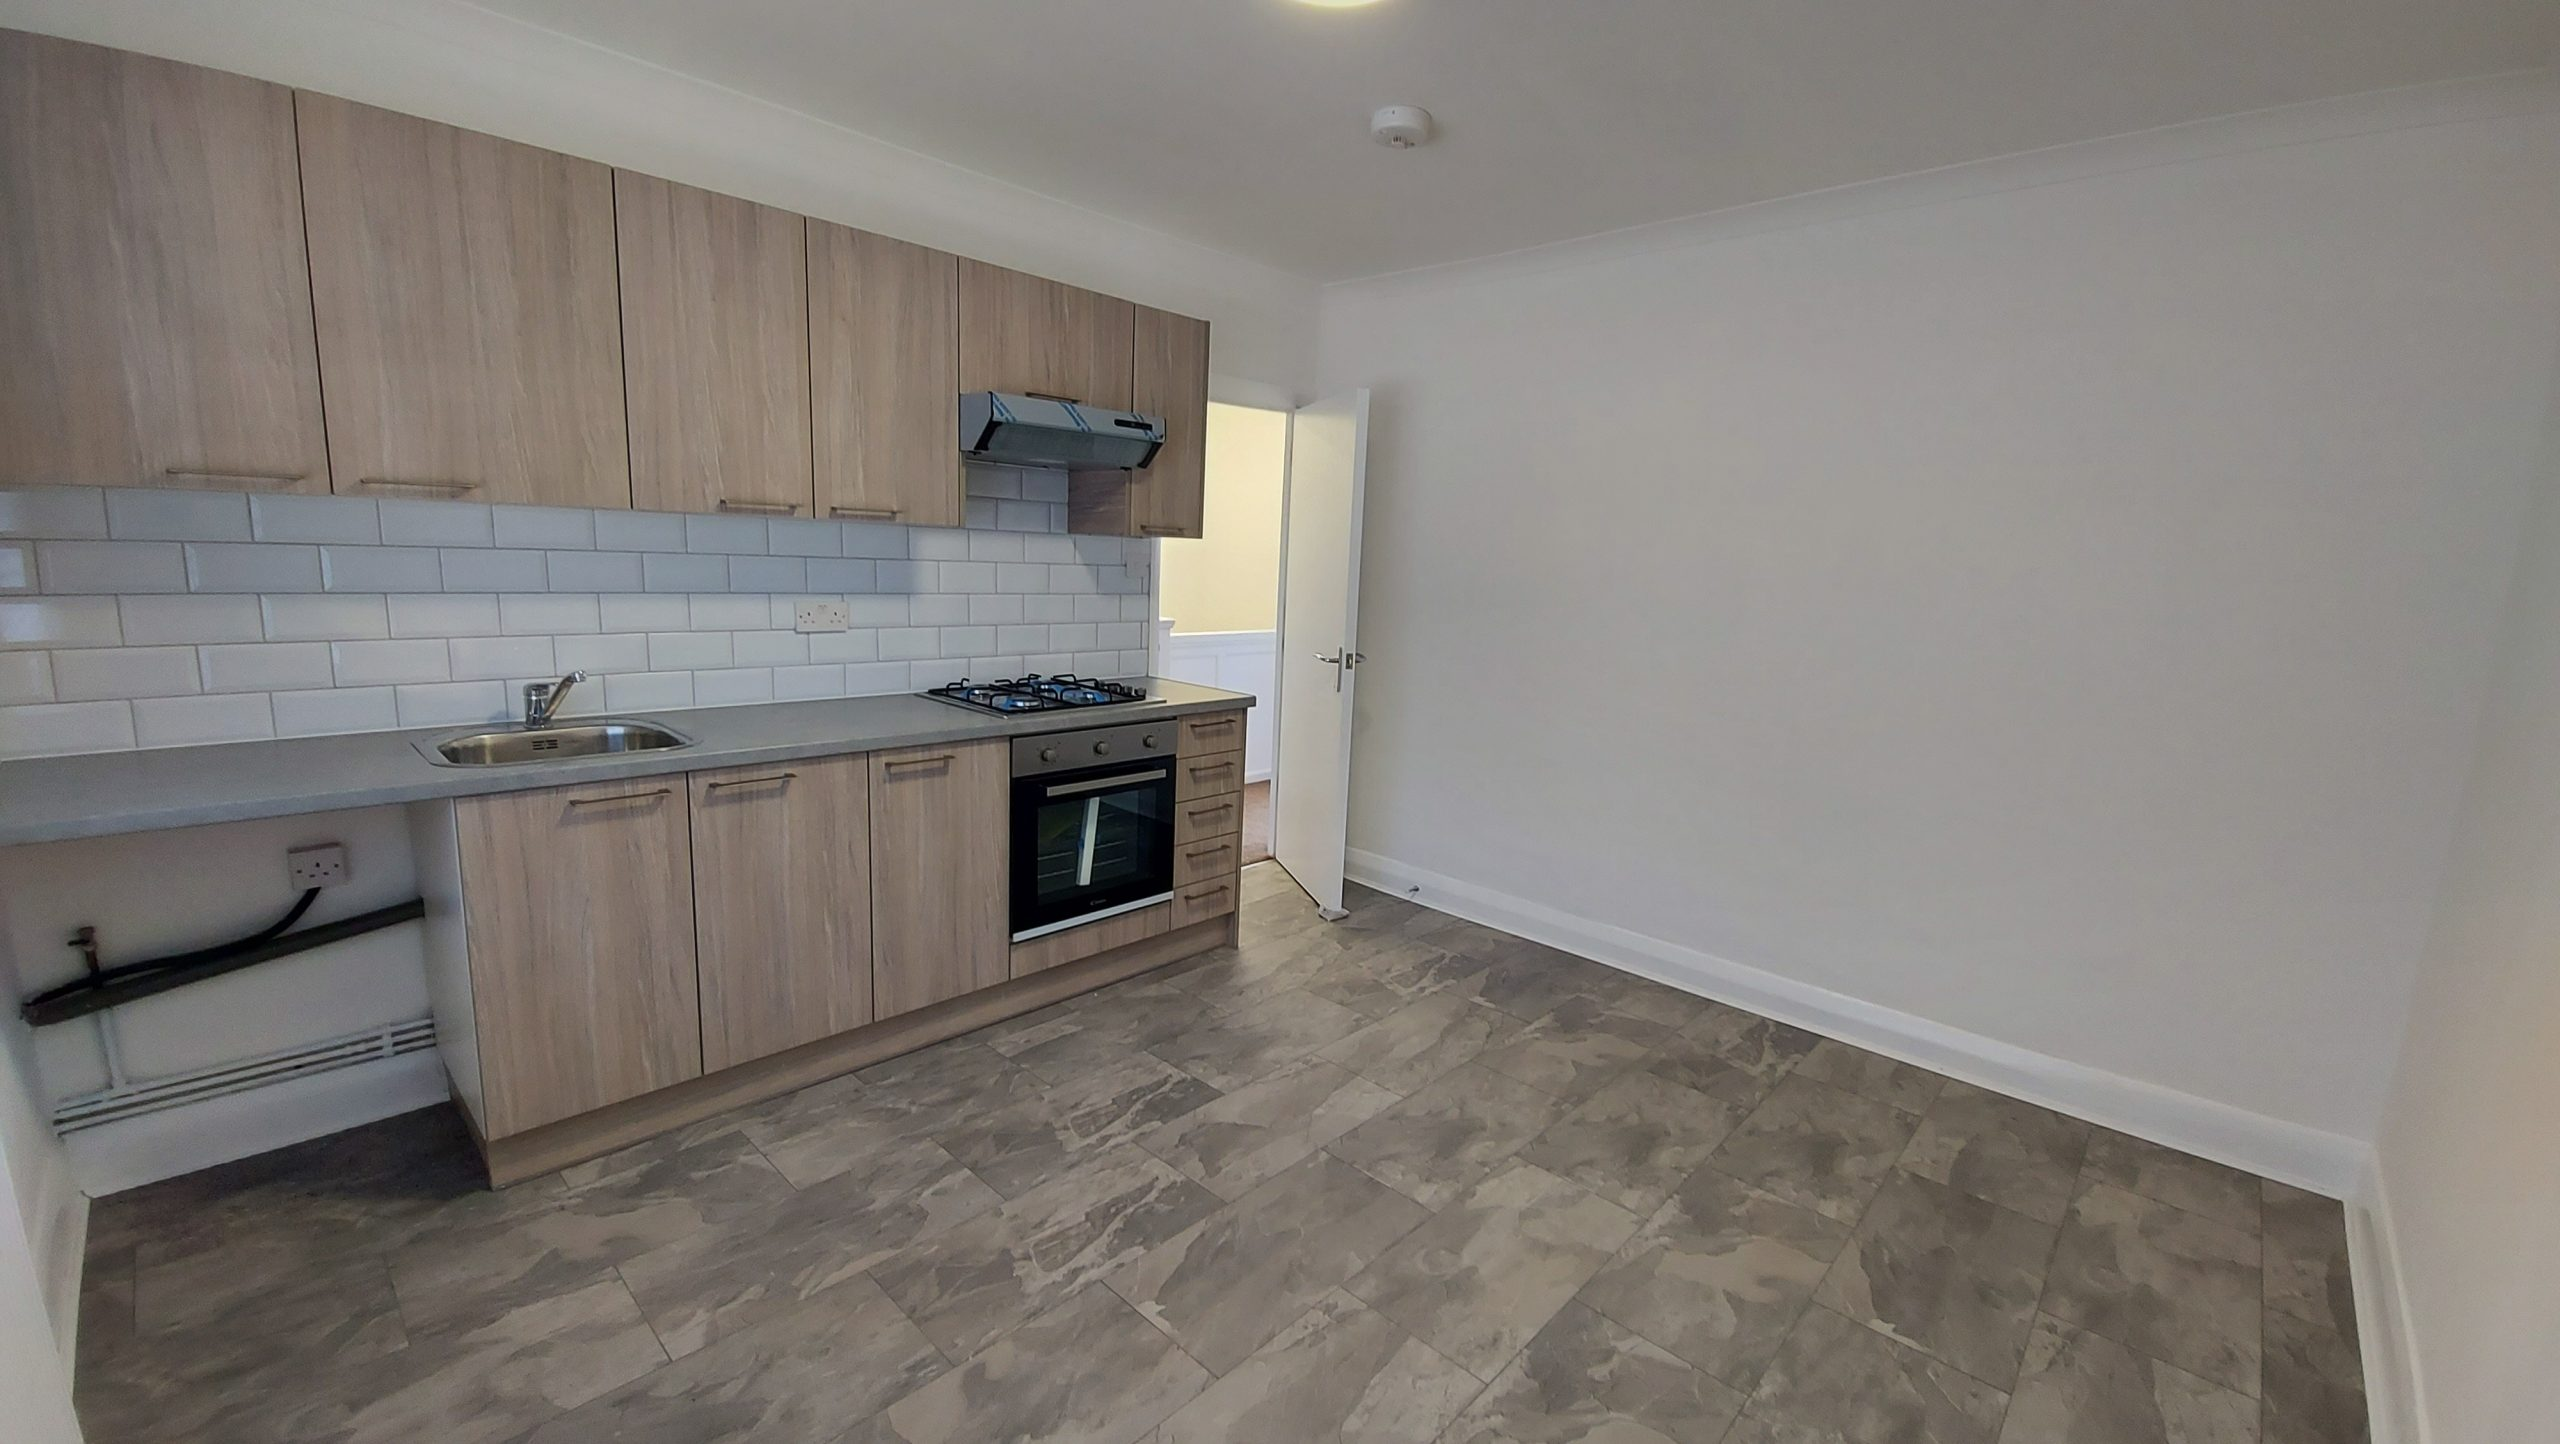 2 Bed Flat Longacre Road E17 4DT Walthamstow